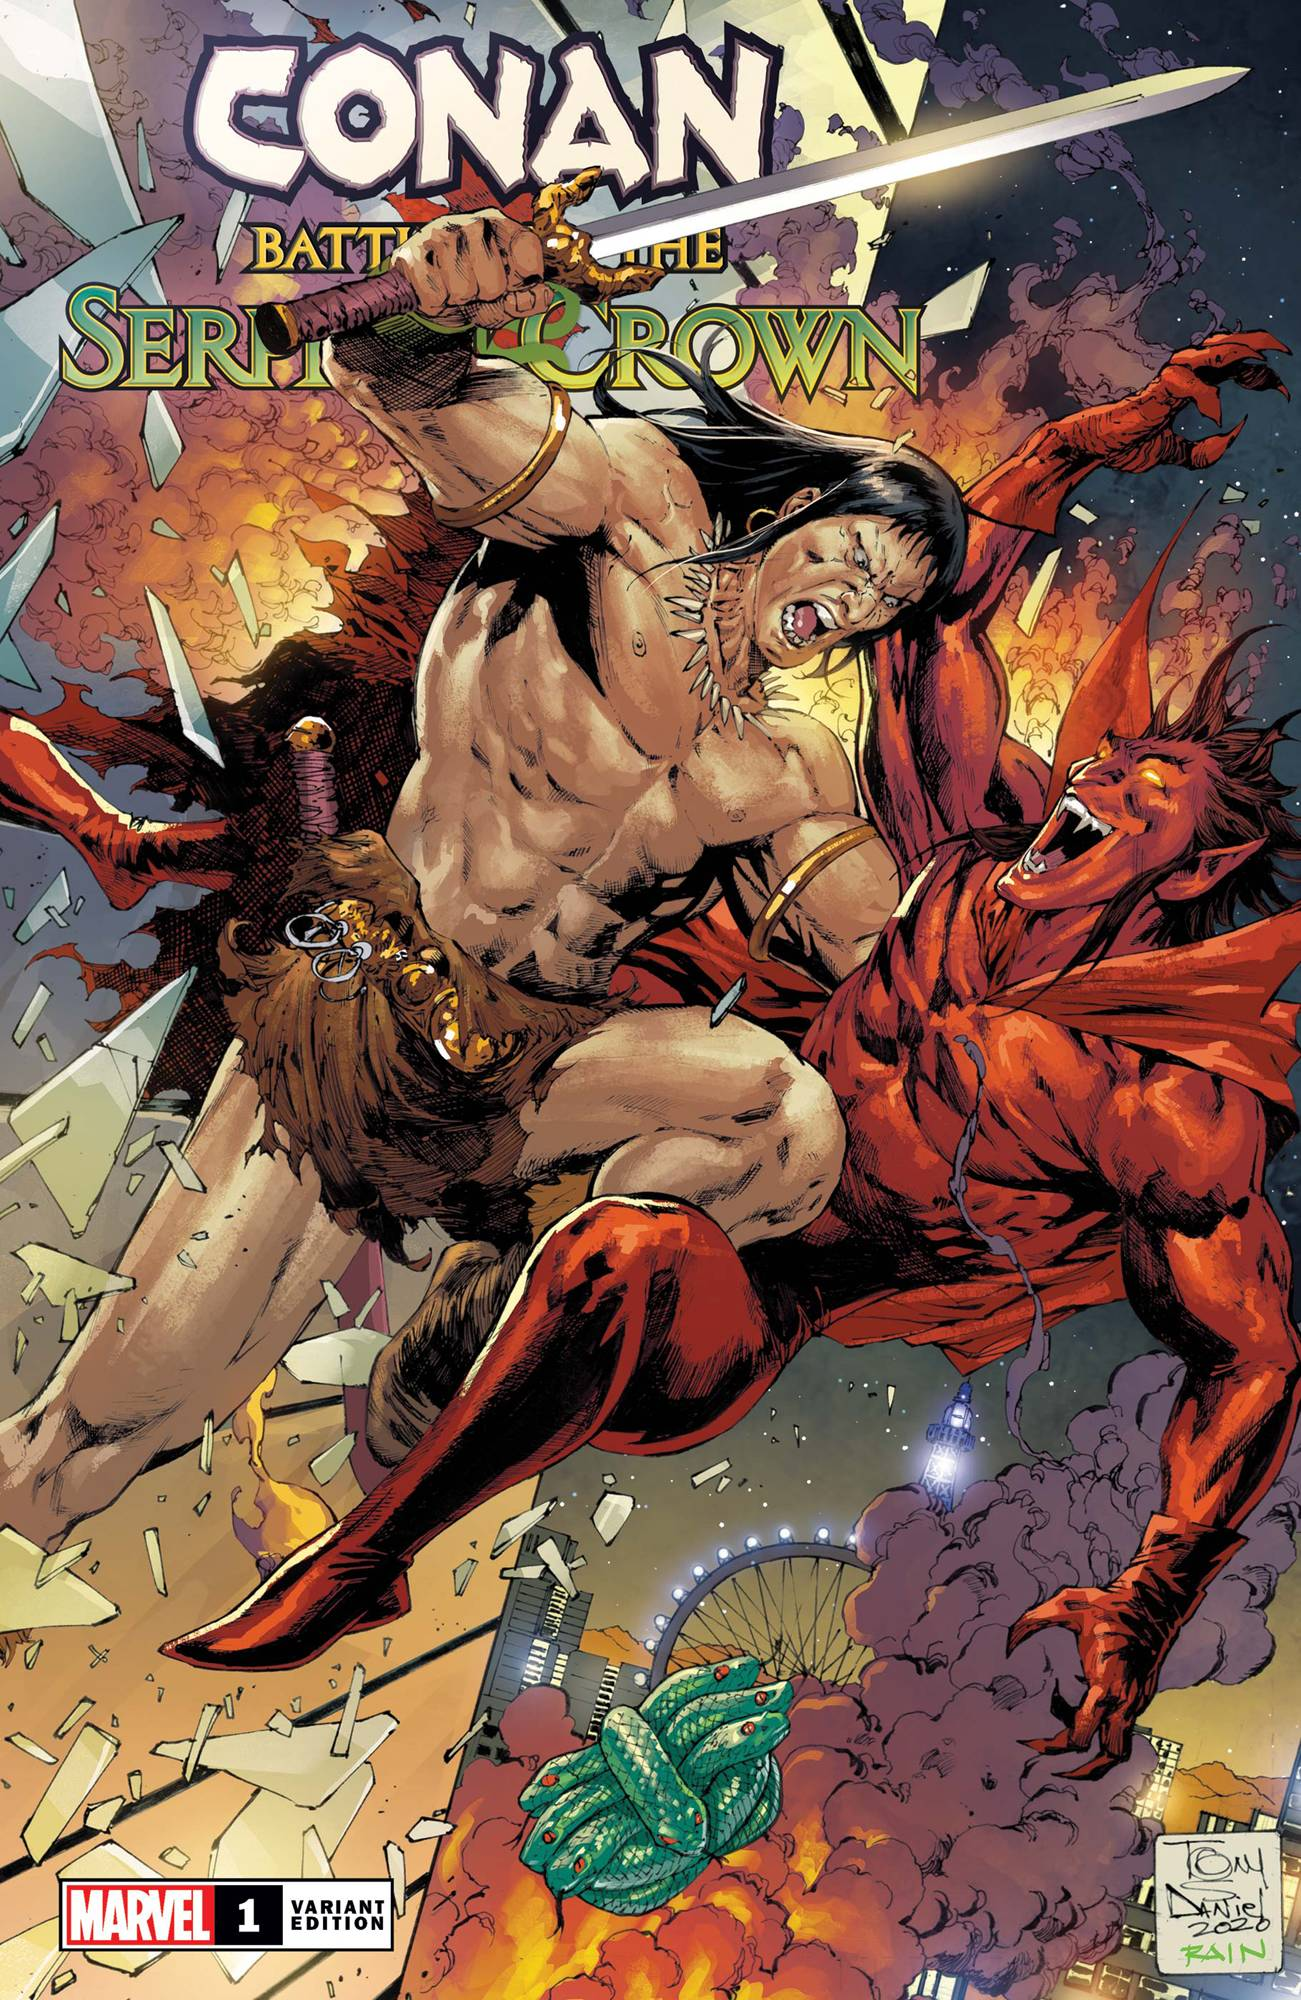 CONAN BATTLE FOR SERPENT CROWN #1 (OF 5) DANIEL VAR